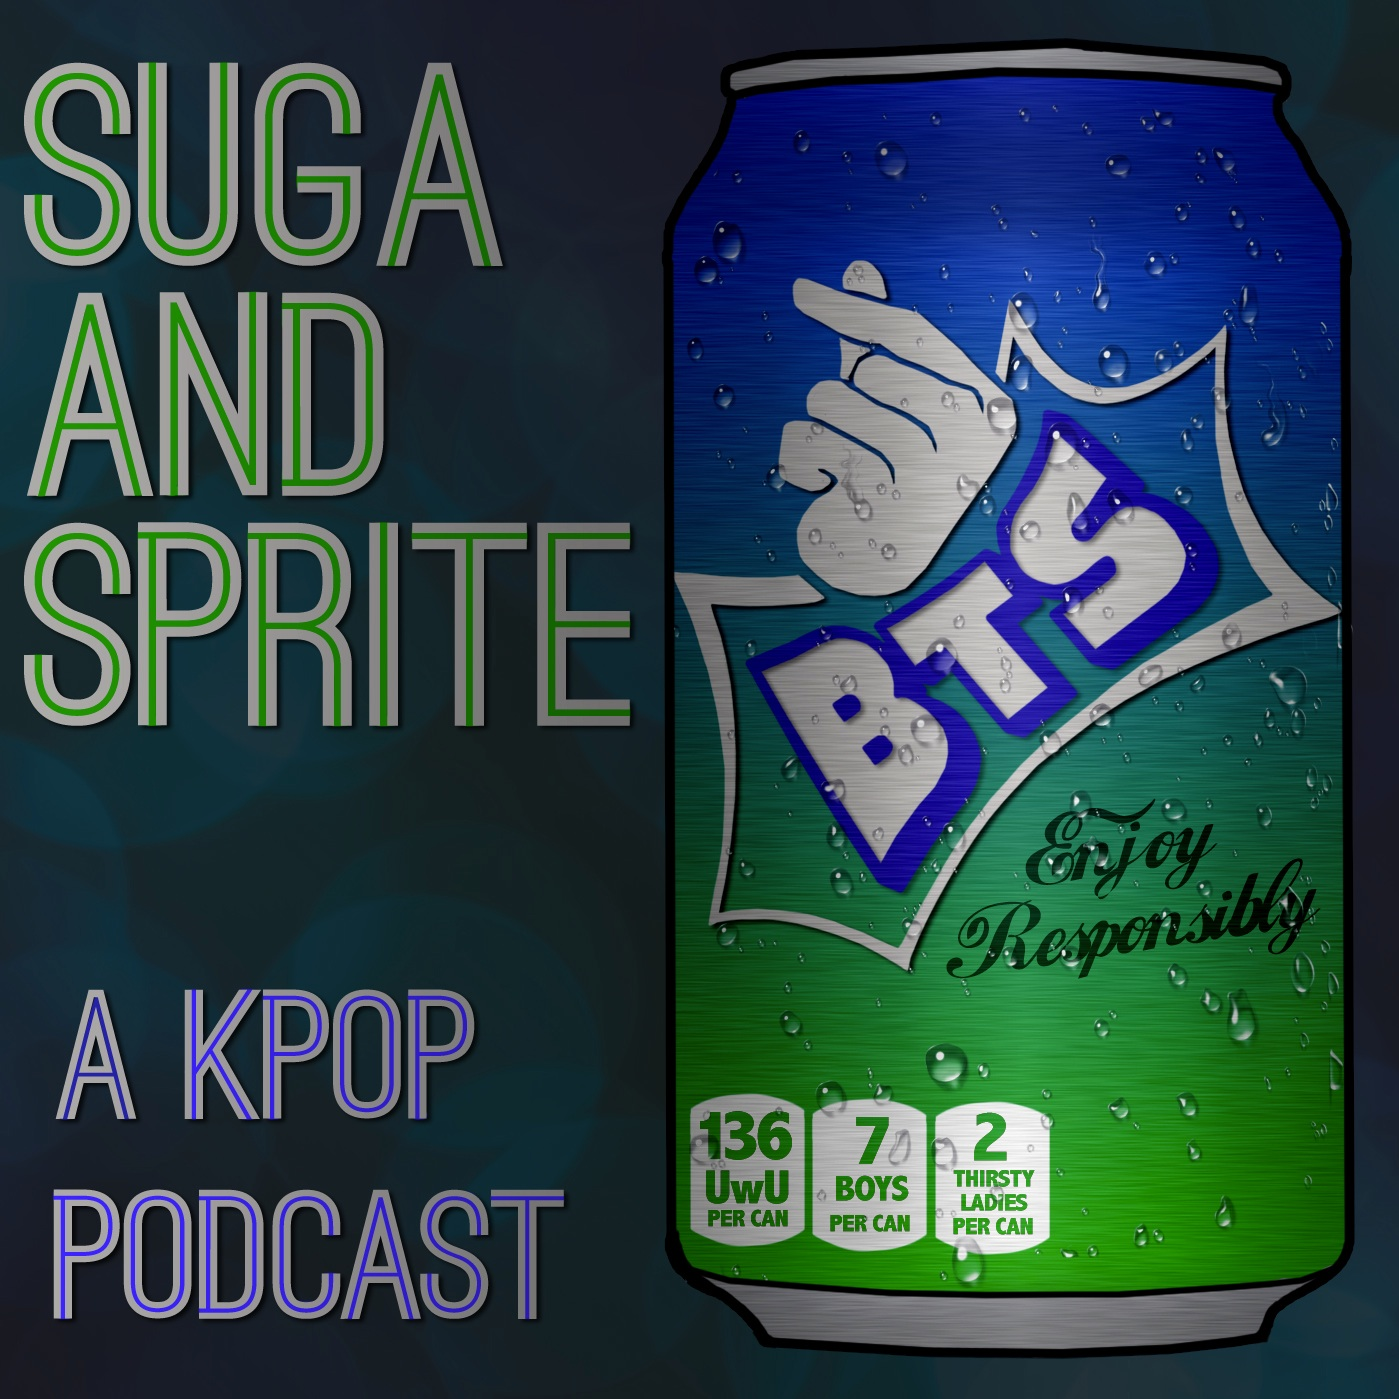 Suga and Sprite: A BTS Podcast  Episode 5: Sexual Namjoon